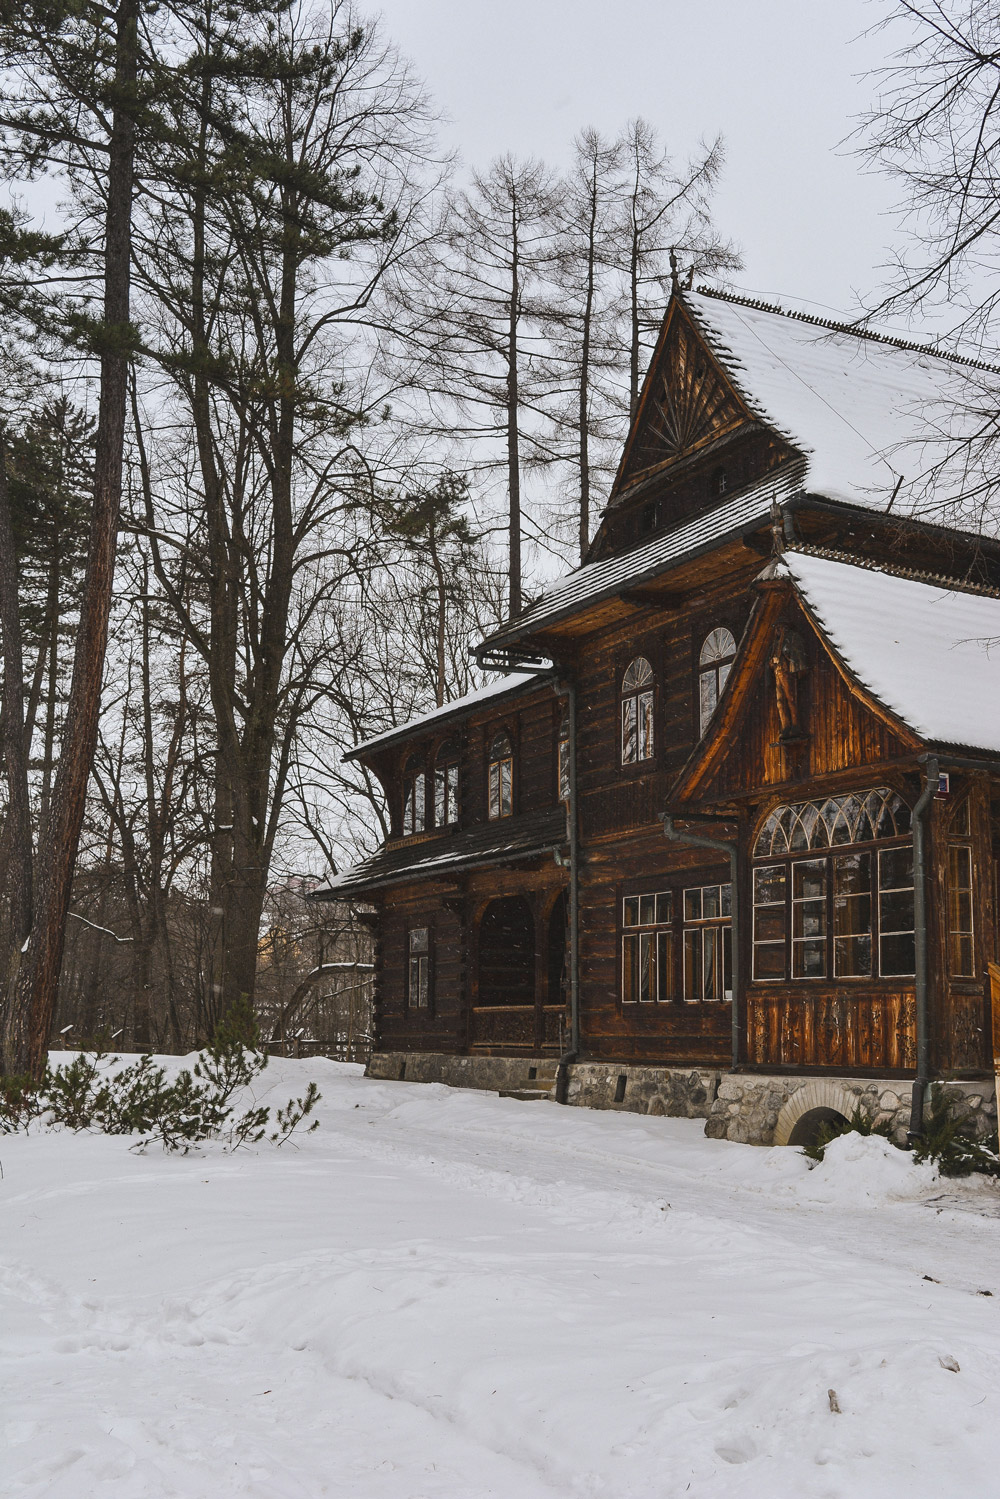 The Museum of Zakopane style is an architectural gem and specially beautiful covered in snow